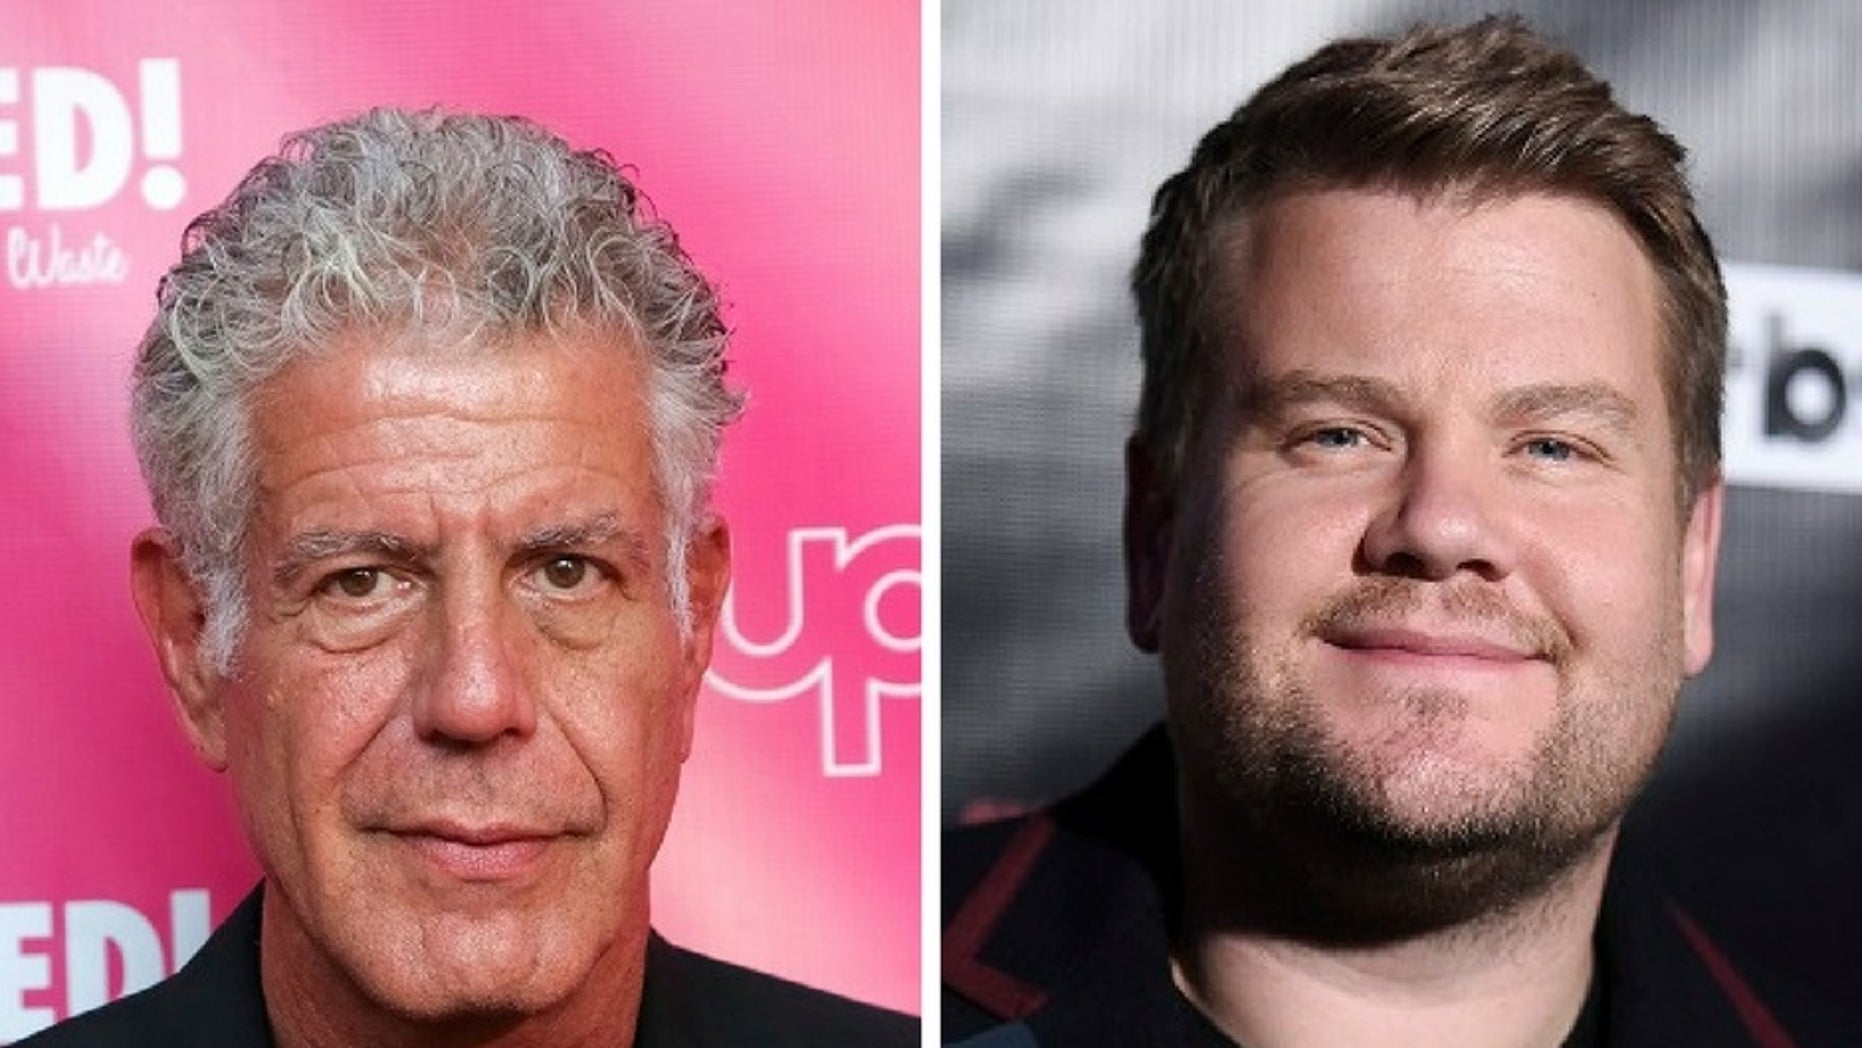 Anthony Bourdain blasted James Corden on Twitter following his controversial jokes about Harvey Weinstein.